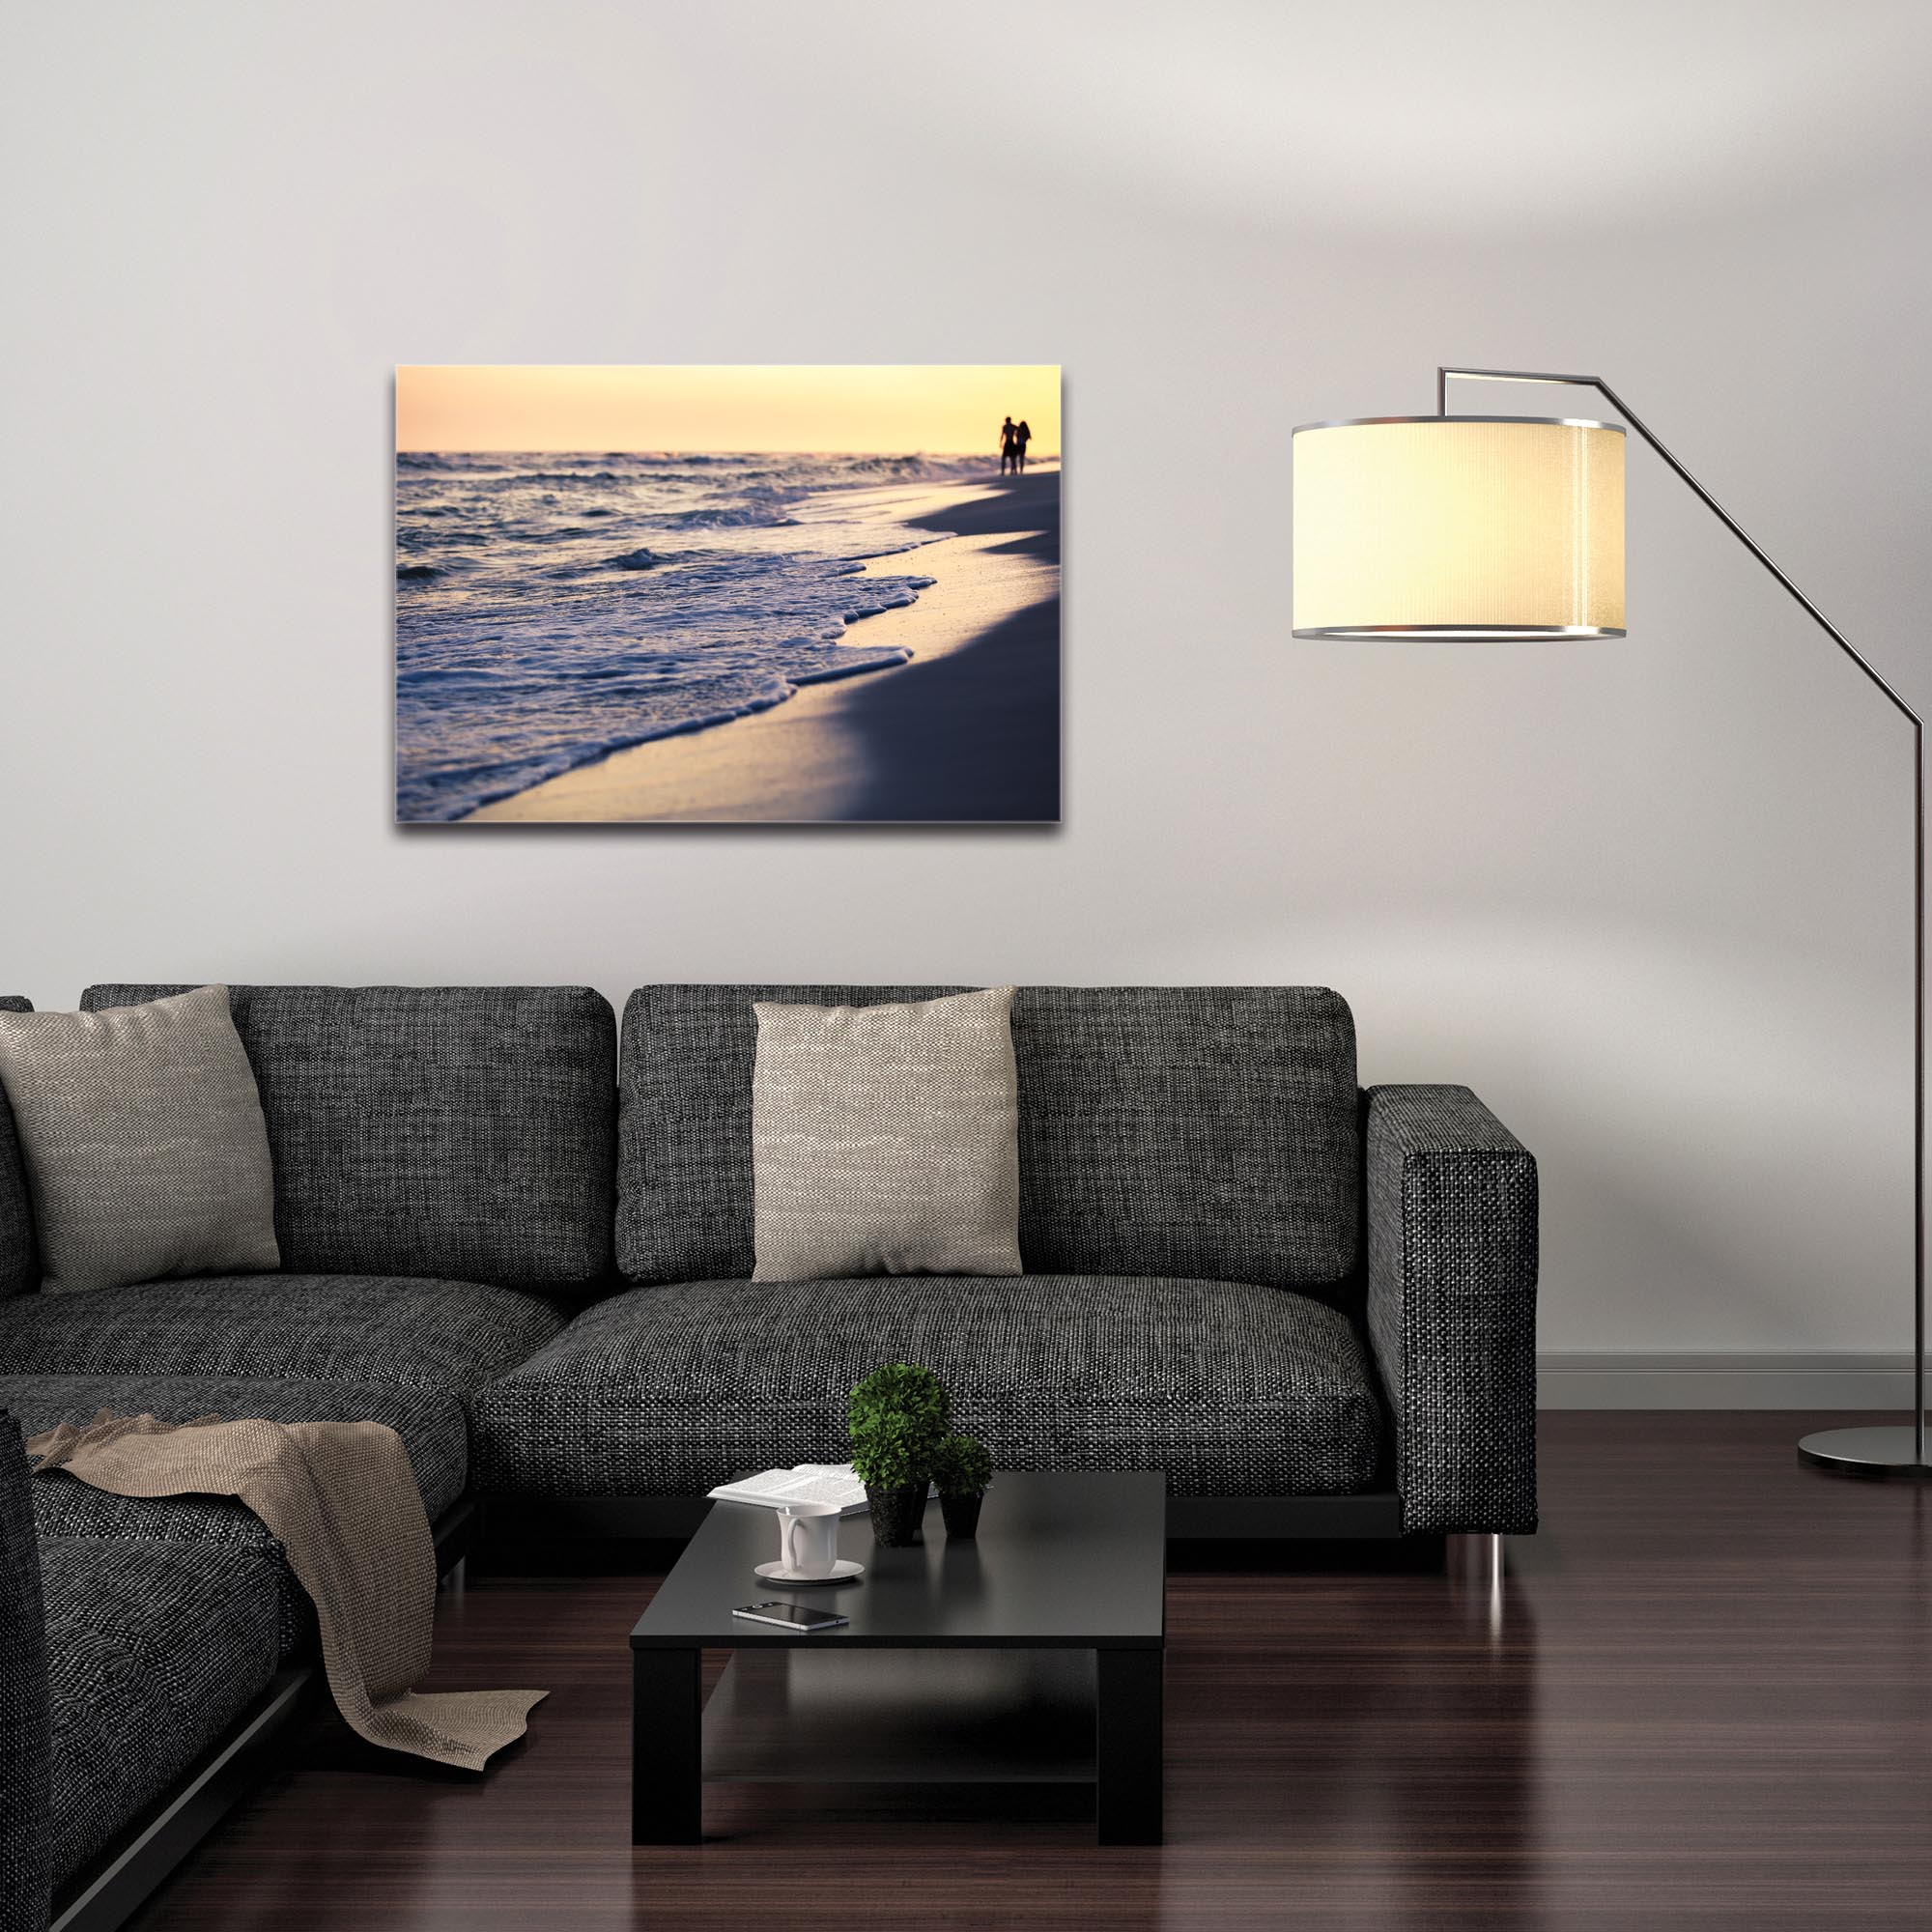 Coastal Wall Art 'Beach Stroll' - Beach Sunset Decor on Metal or Plexiglass - Image 3